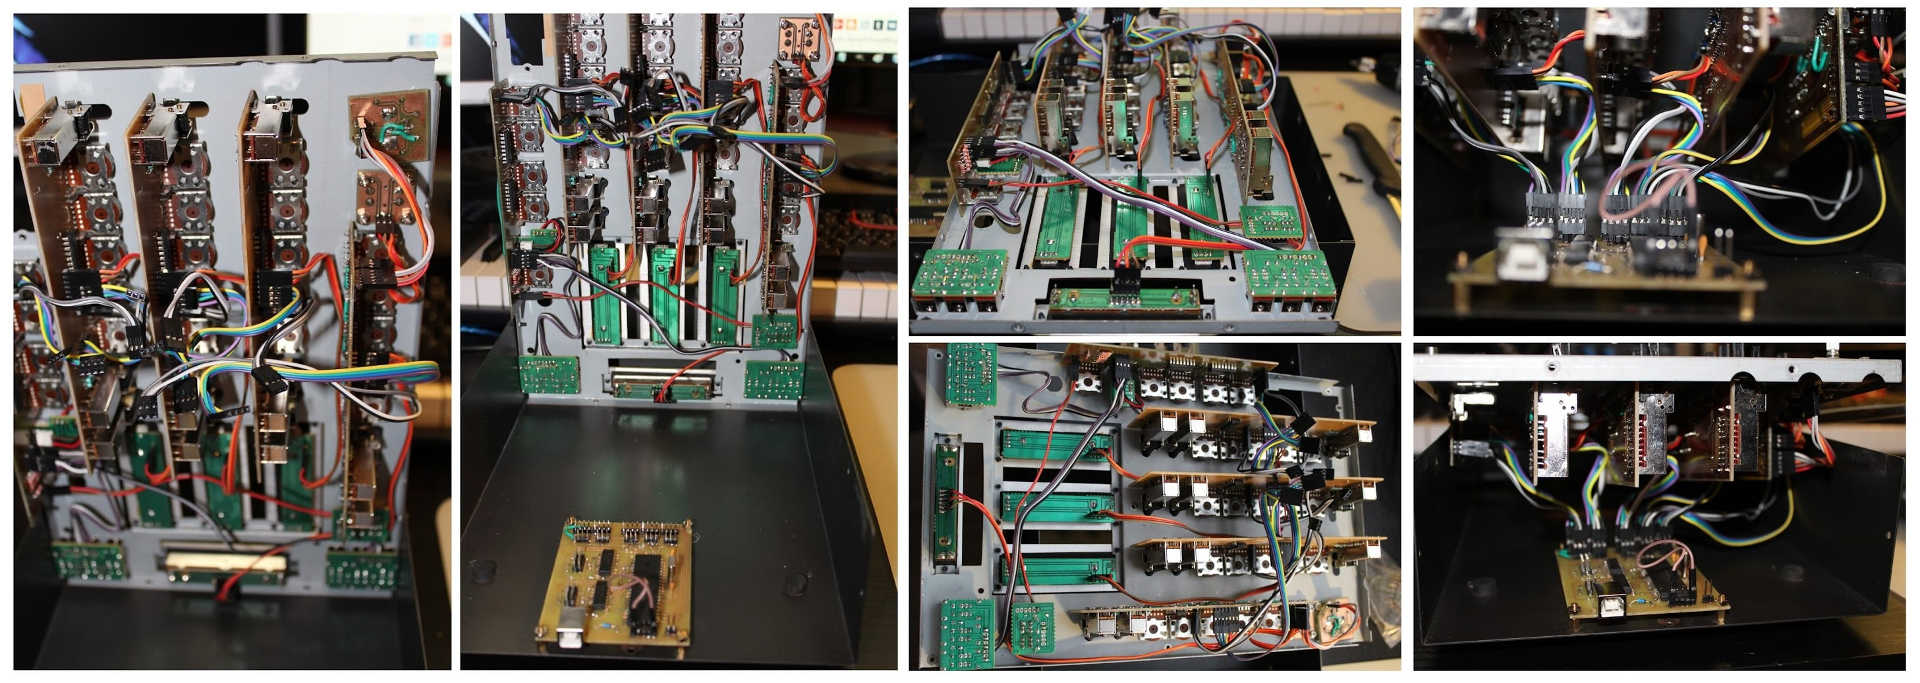 stanton rm3s wiring 03